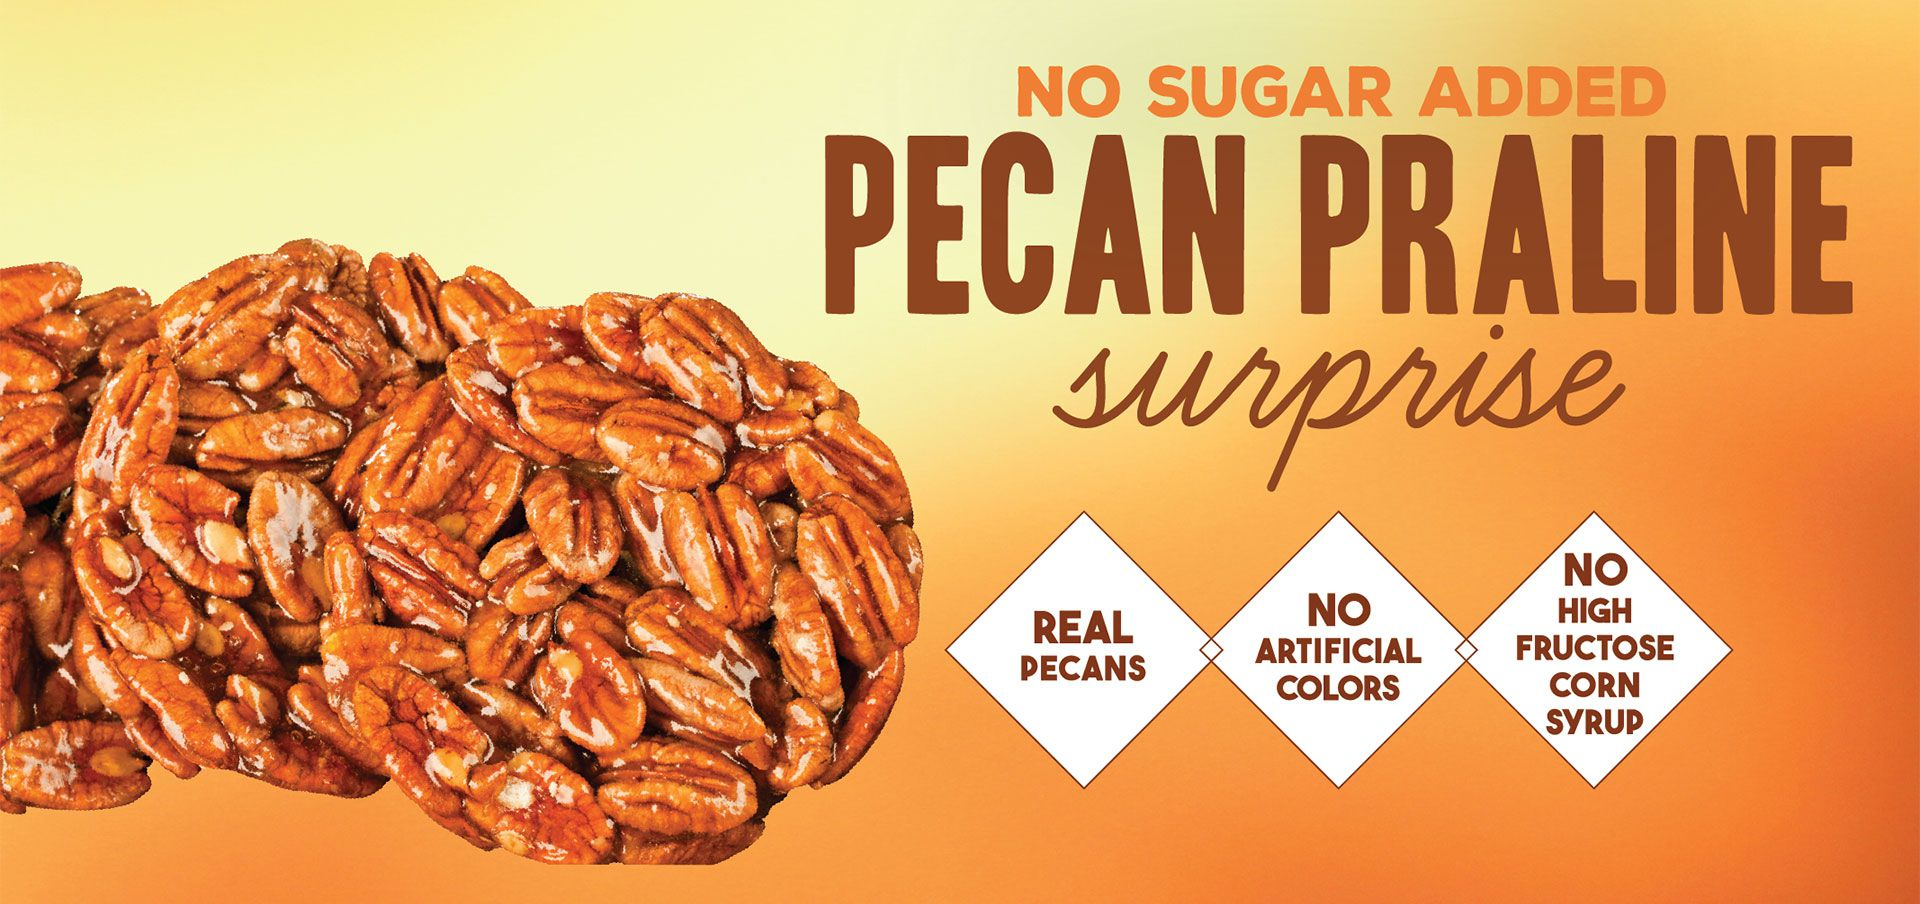 pecan praline surprise label image